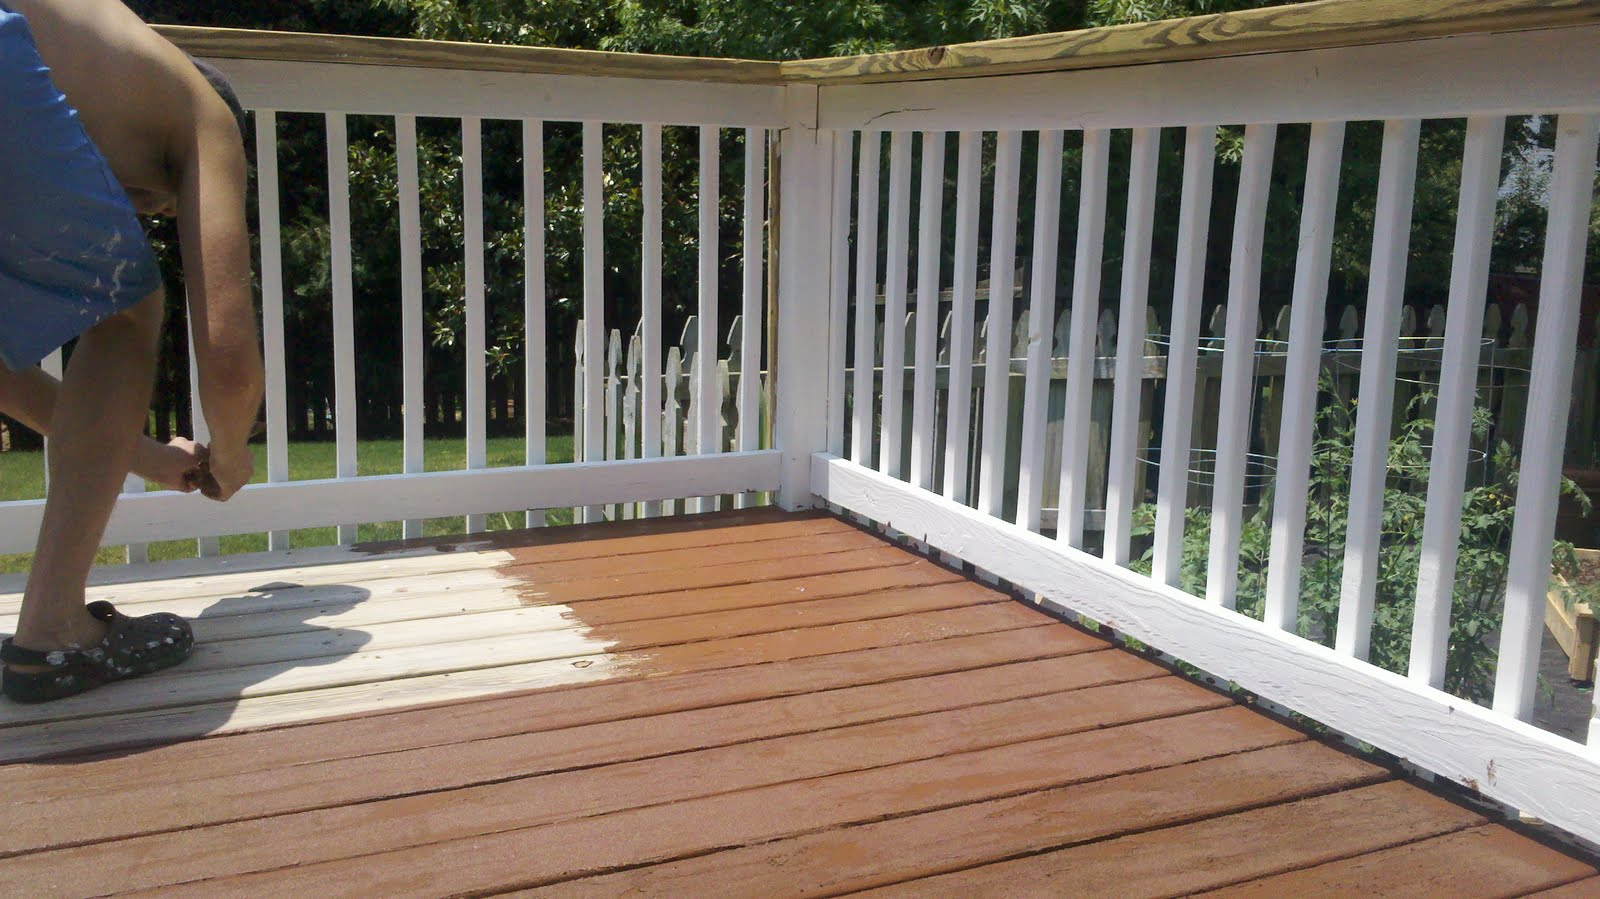 Deck paint colors home depot deck design and ideas for Deck paint colors home depot